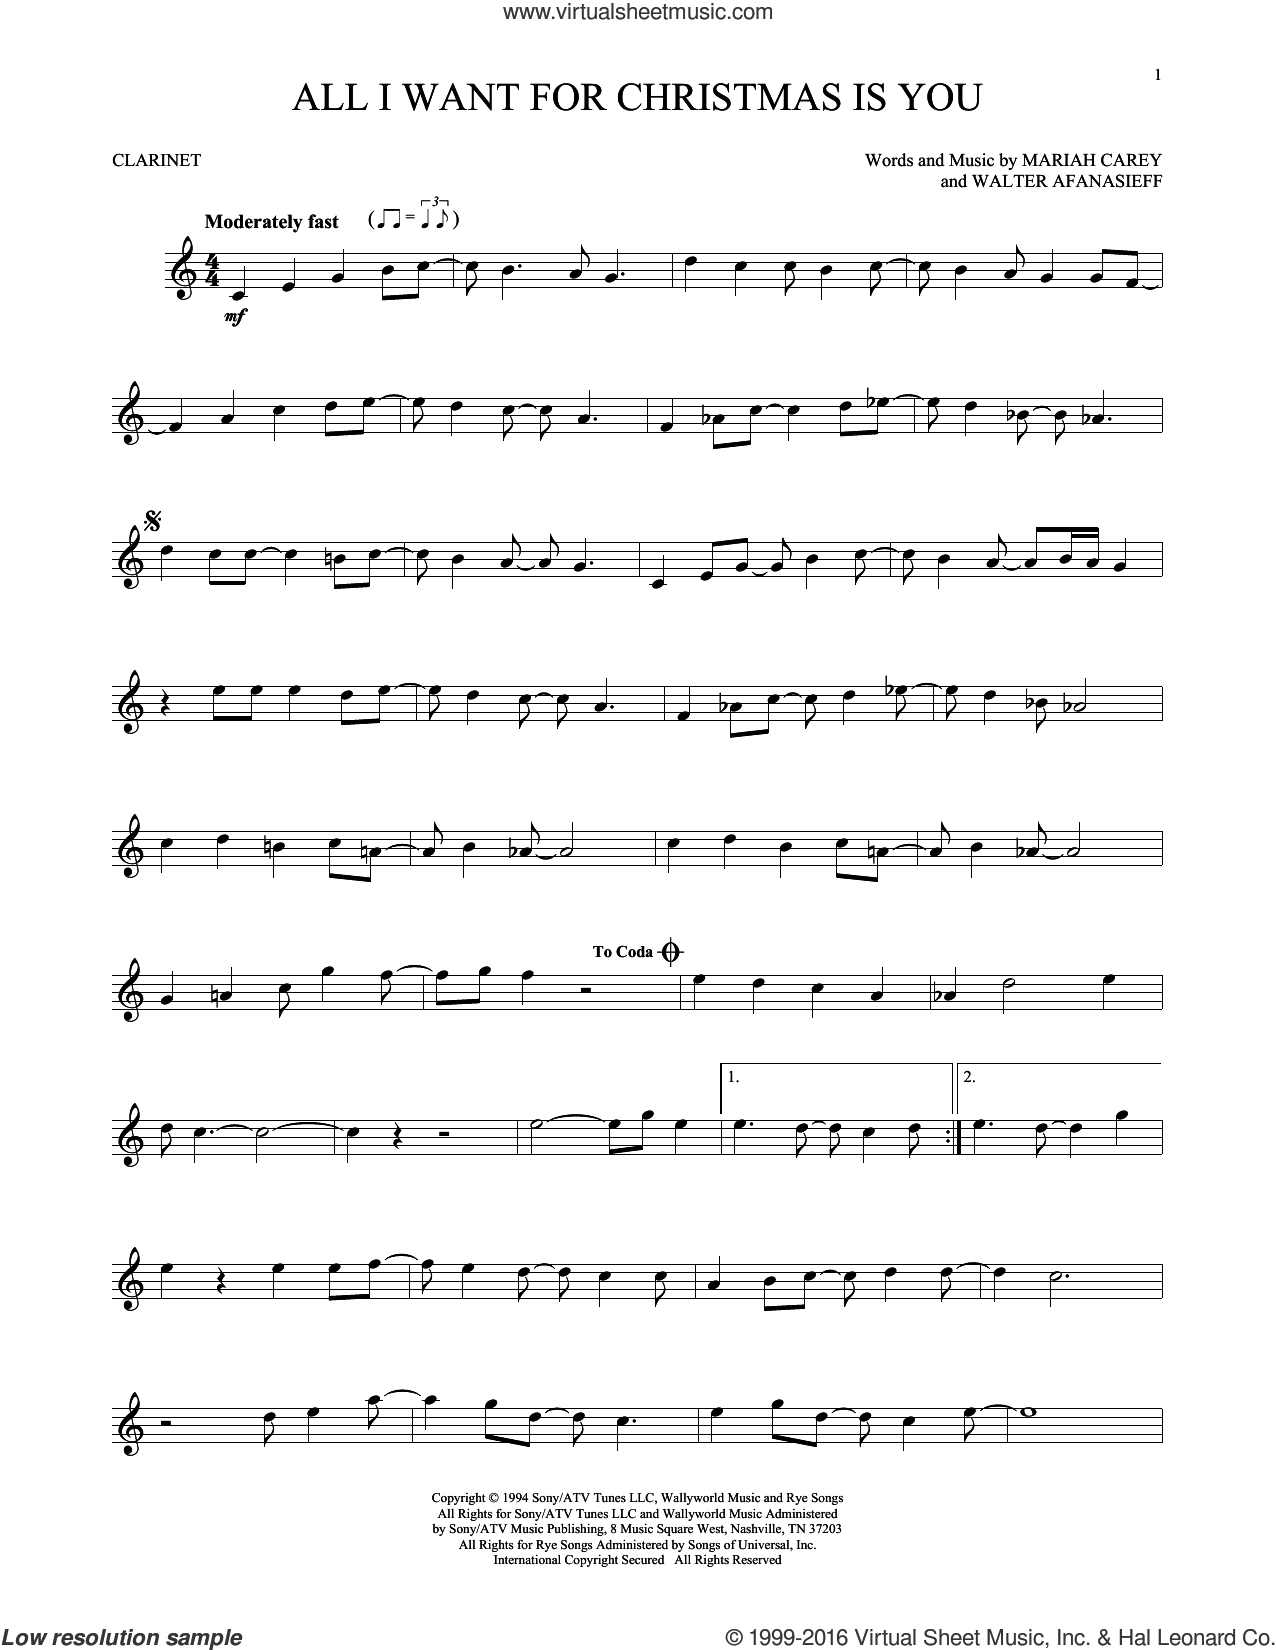 All I Want For Christmas Is You sheet music for clarinet solo by Mariah Carey and Walter Afanasieff, intermediate skill level